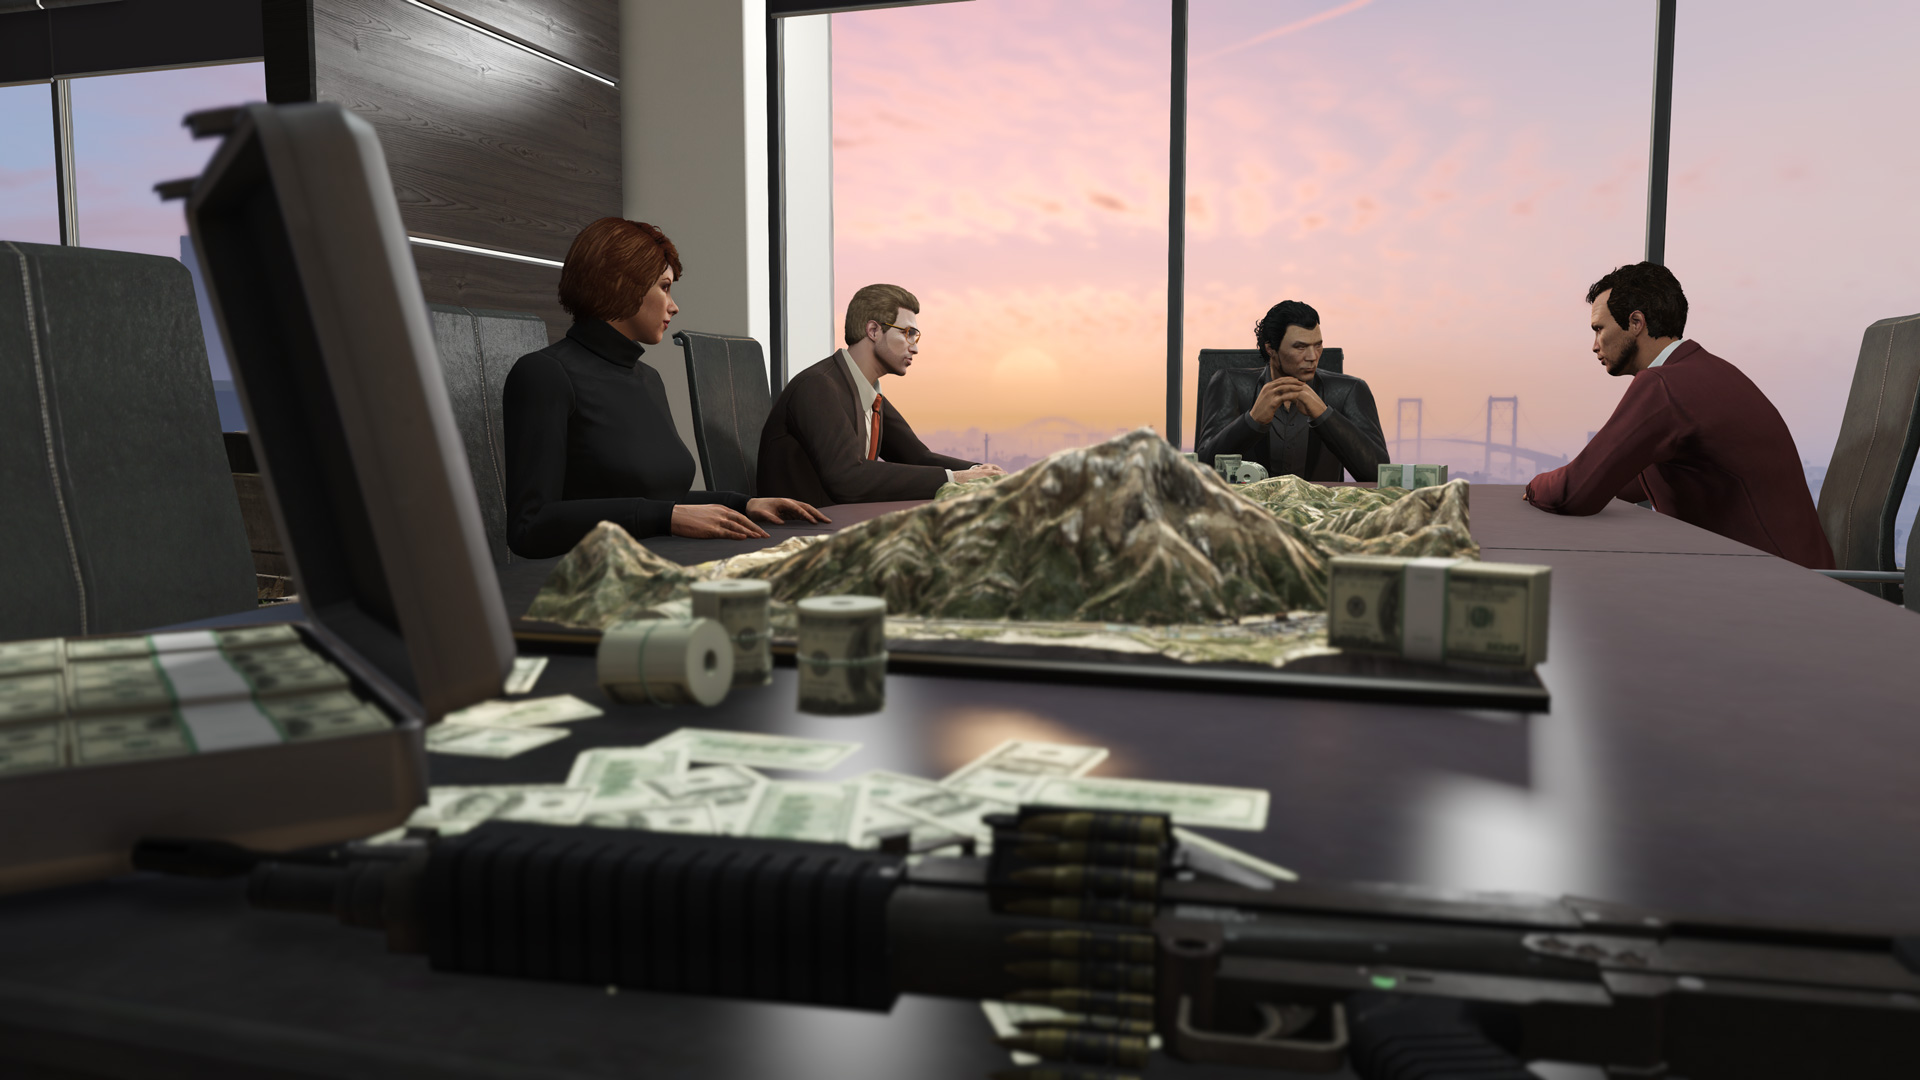 Earn $1,000,000 in GTA Online cash, just for logging in